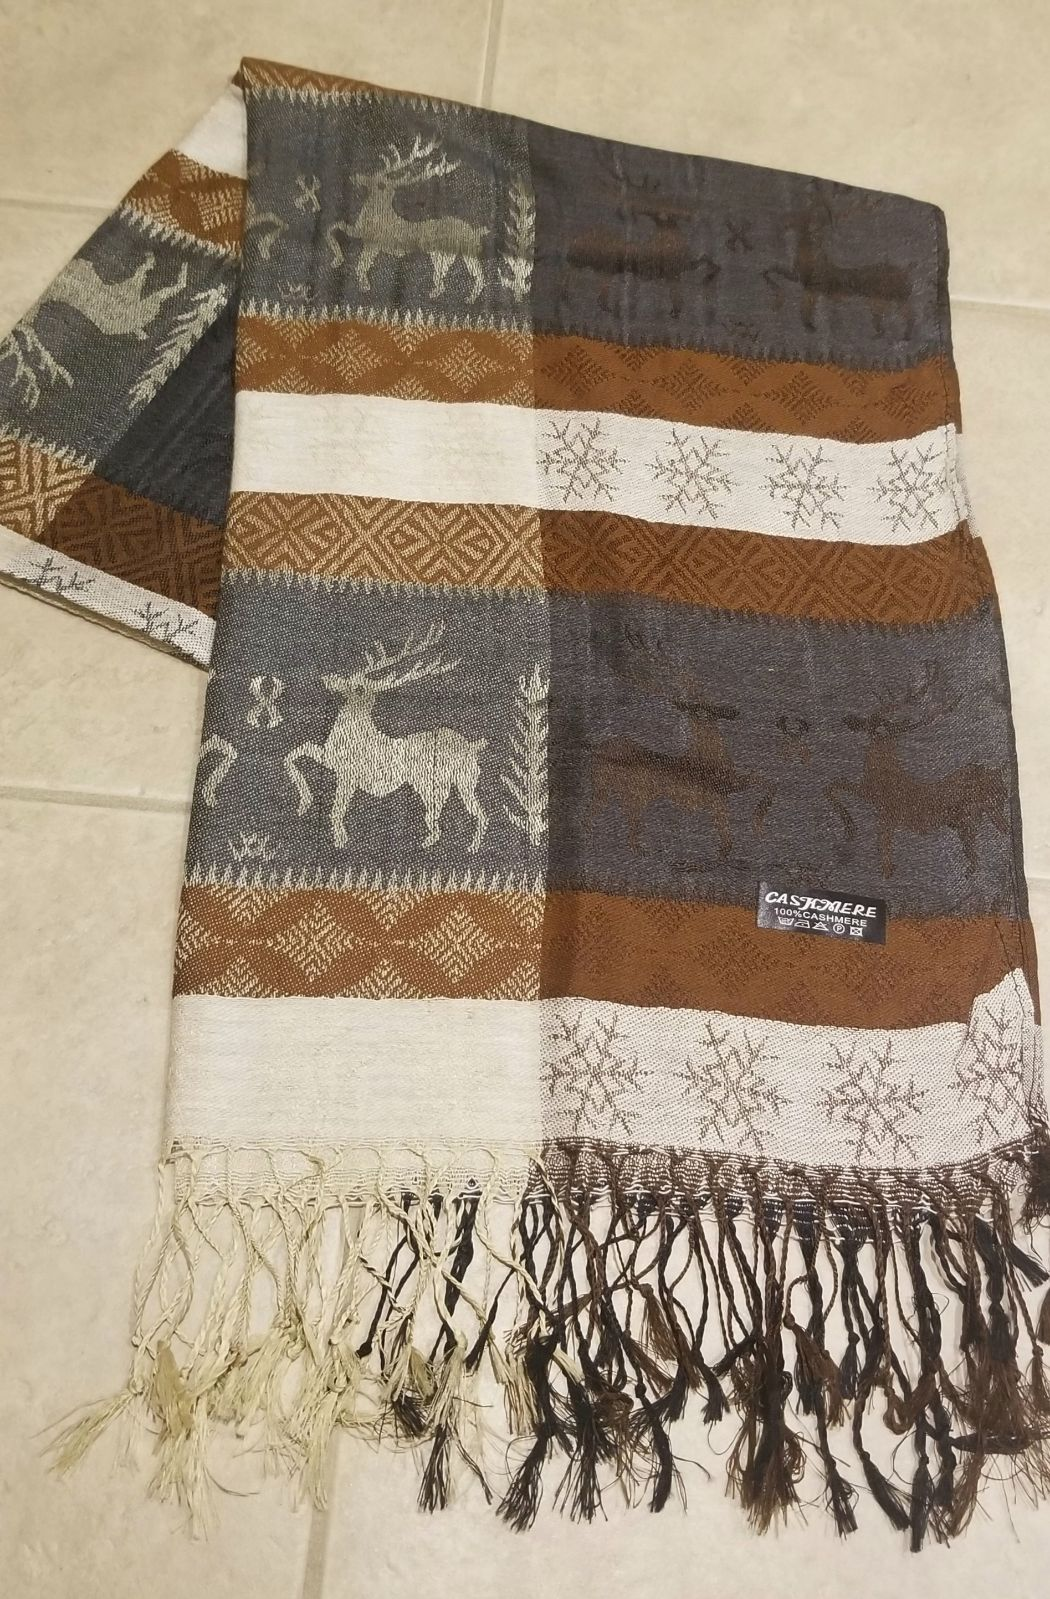 New 100% Cashmere Holy Land Scarf Jerusa